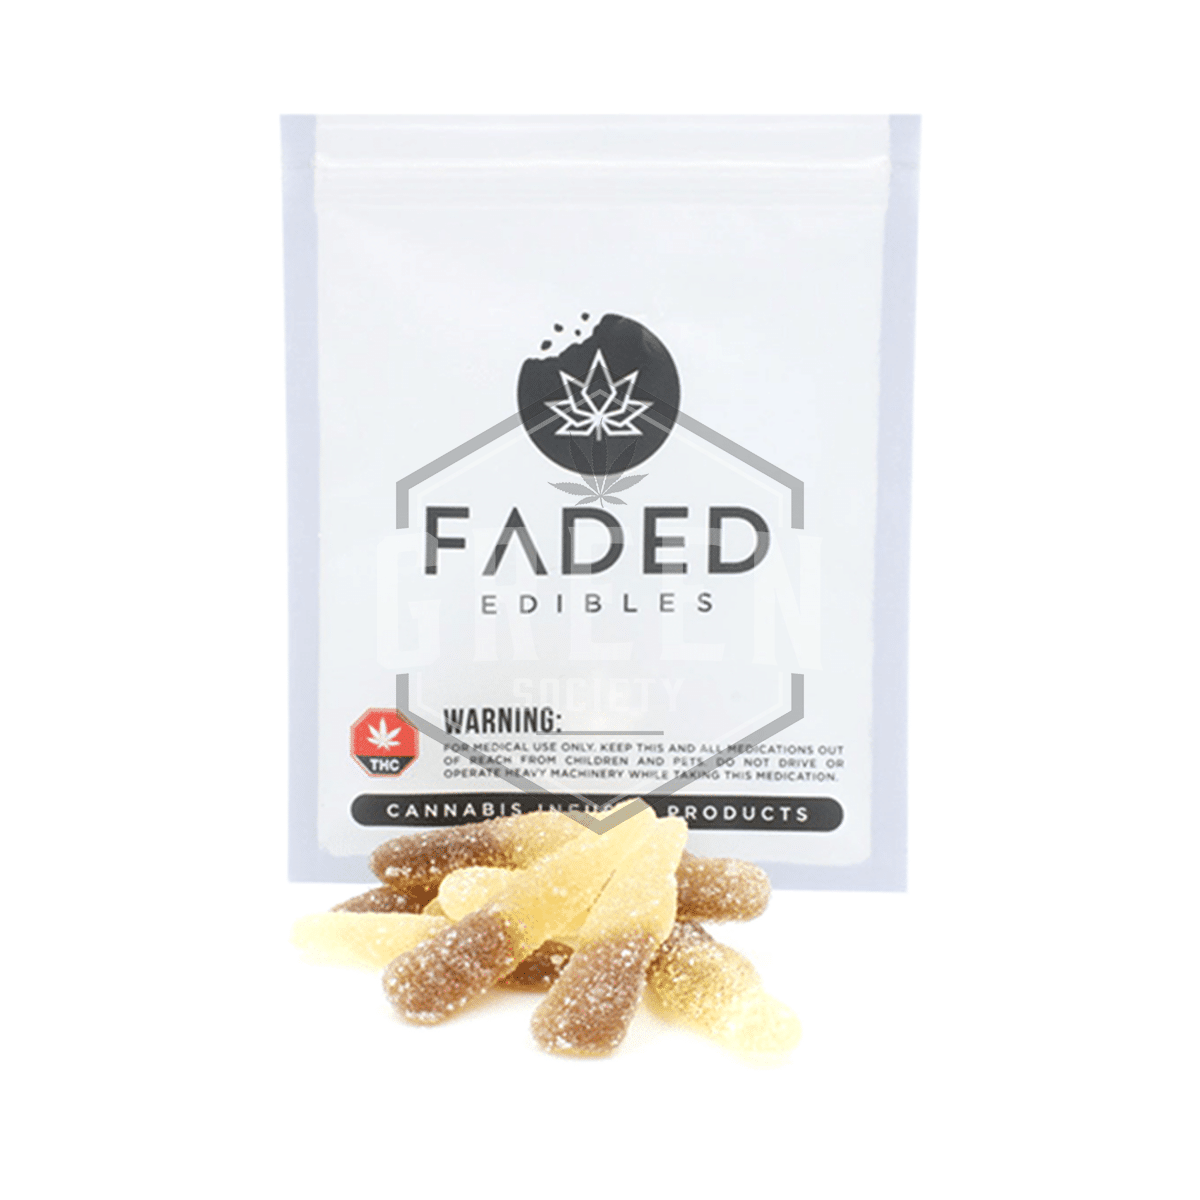 Fizzy Colas by Faded Cannabis Co. by Green Society - Image © 2018 Green Society. All Rights Reserved.